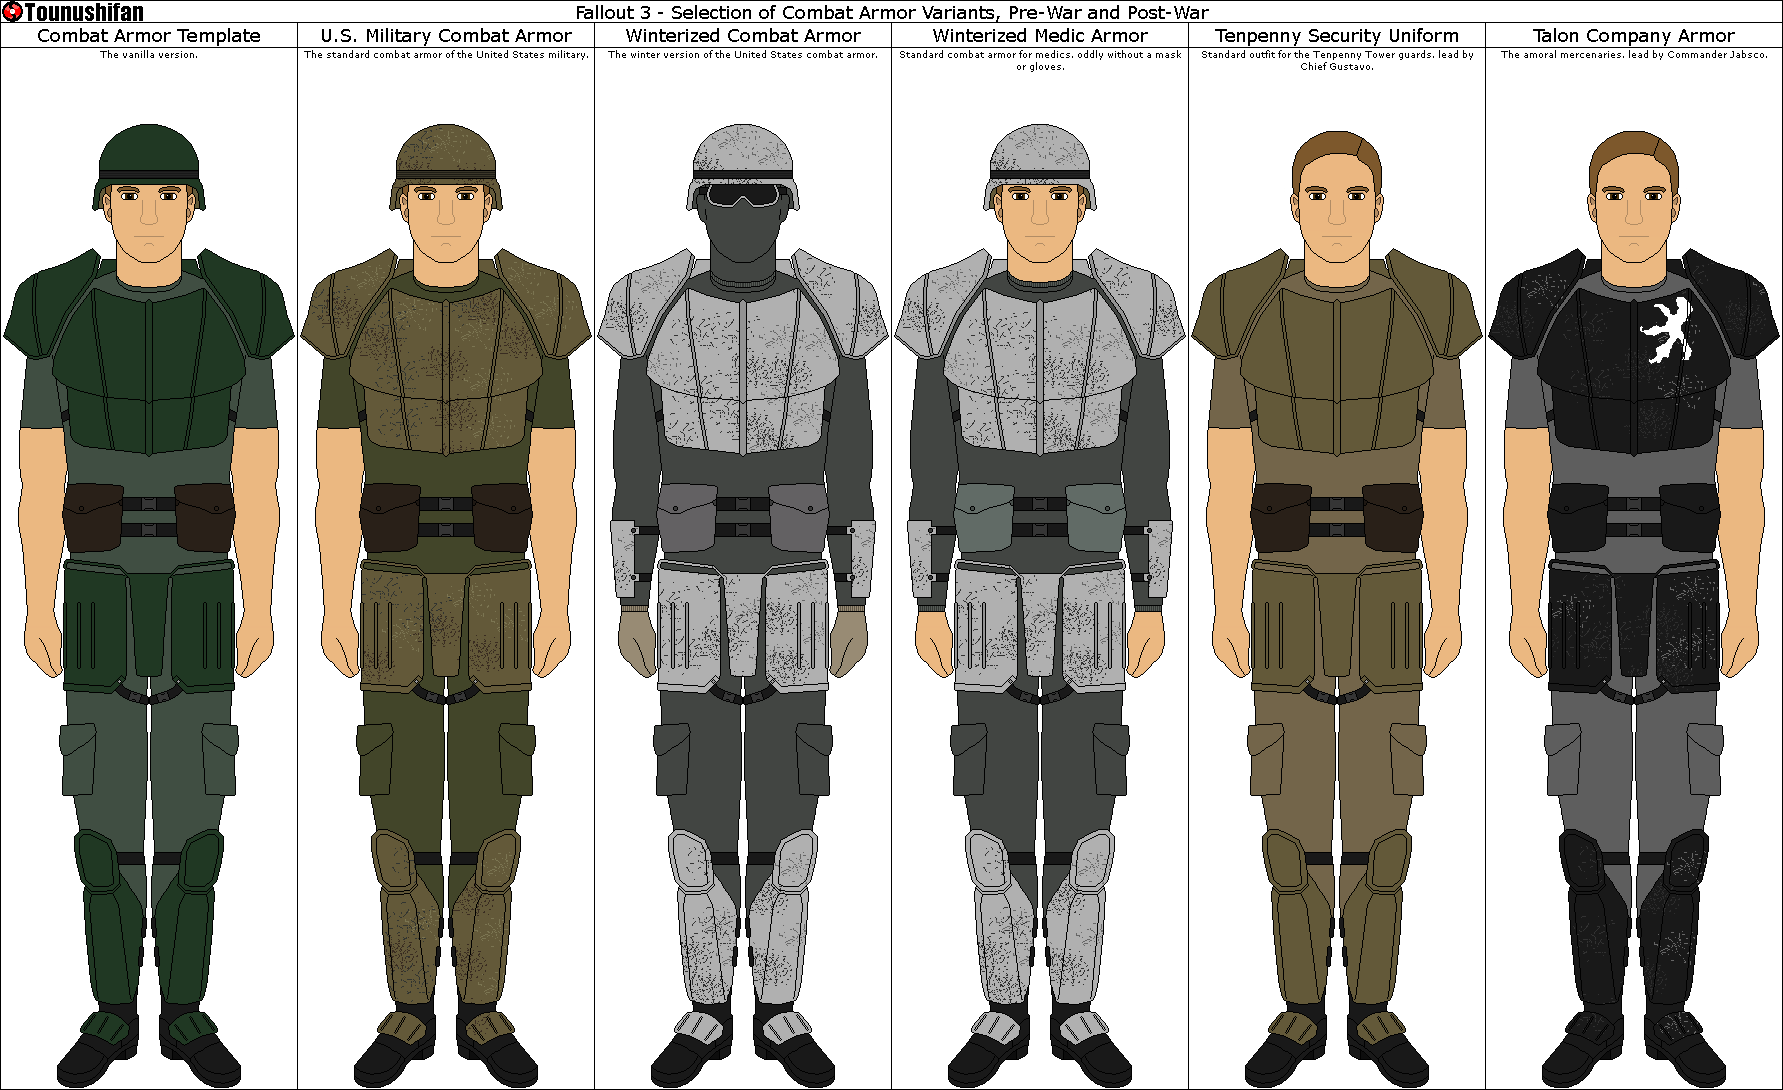 Fallout 3 - Combat Armor by Grand-Lobster-King on DeviantArt